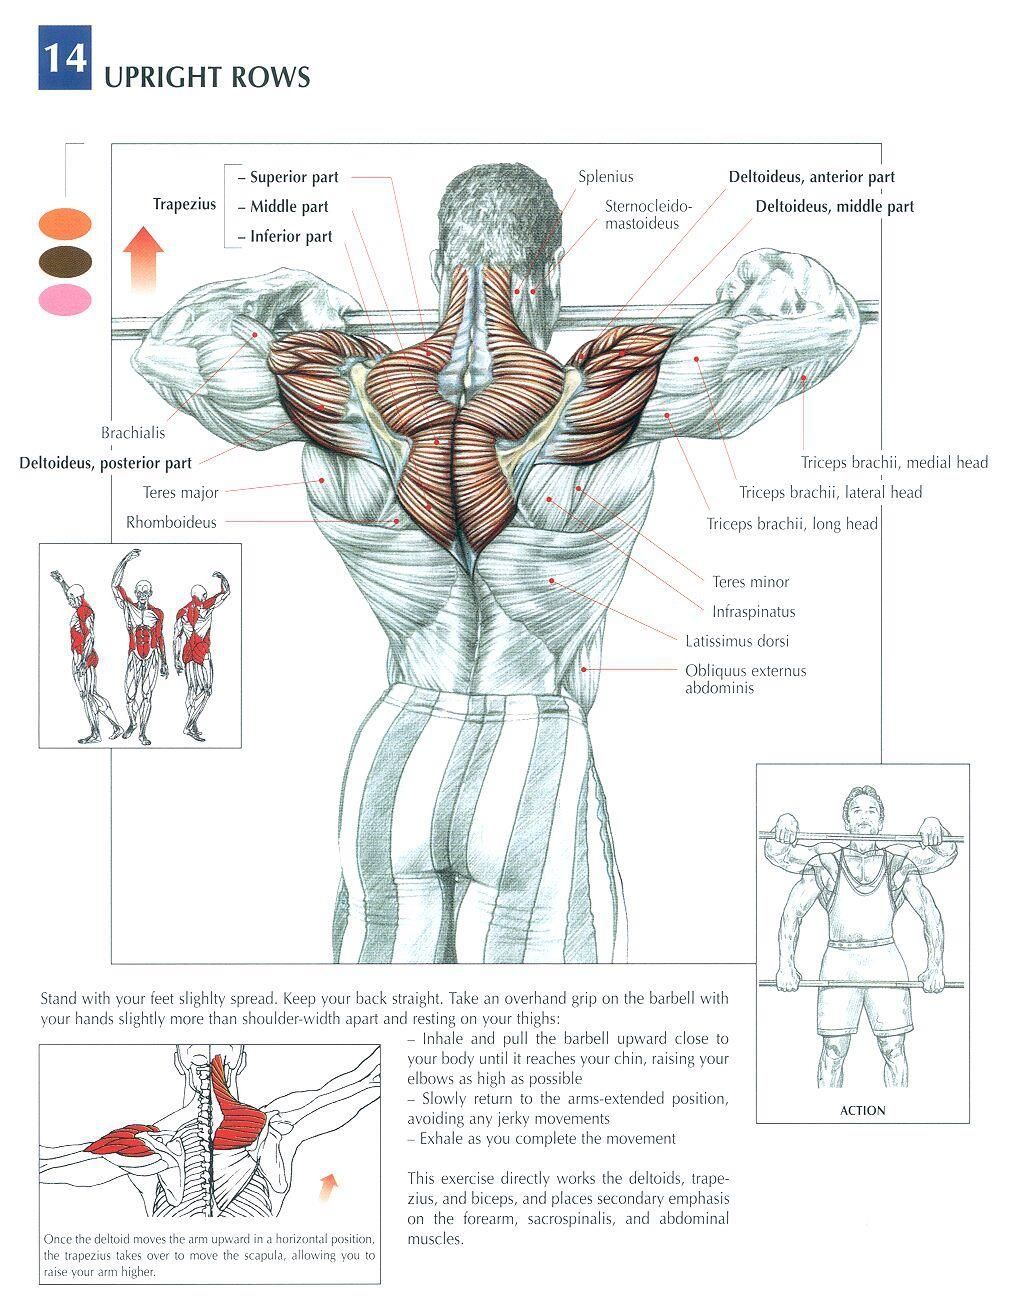 upright rows health fitness exercises diagrams body muscles gym bodybuilding back [ 1016 x 1296 Pixel ]